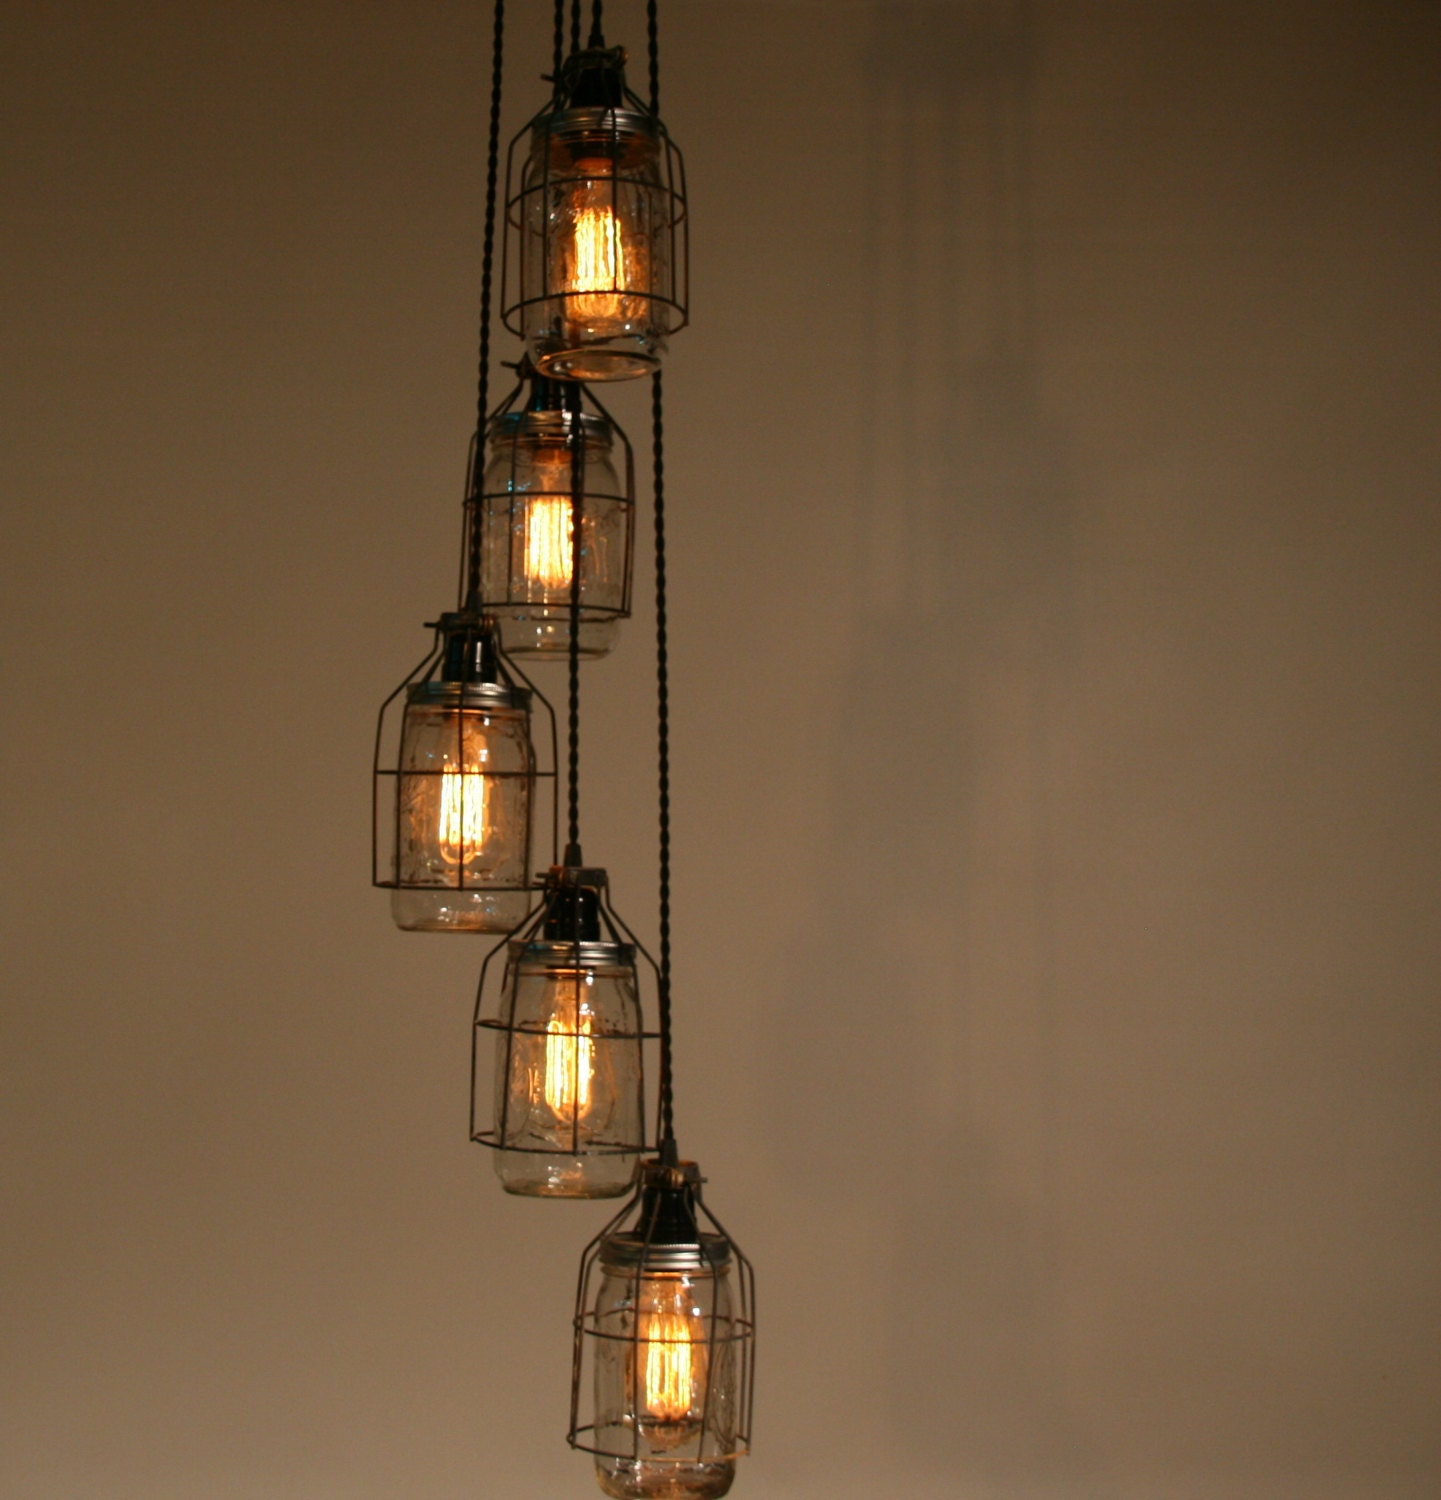 Industrial jar chandelier light pendant by industrialrewind - Light fixtures chandeliers ...